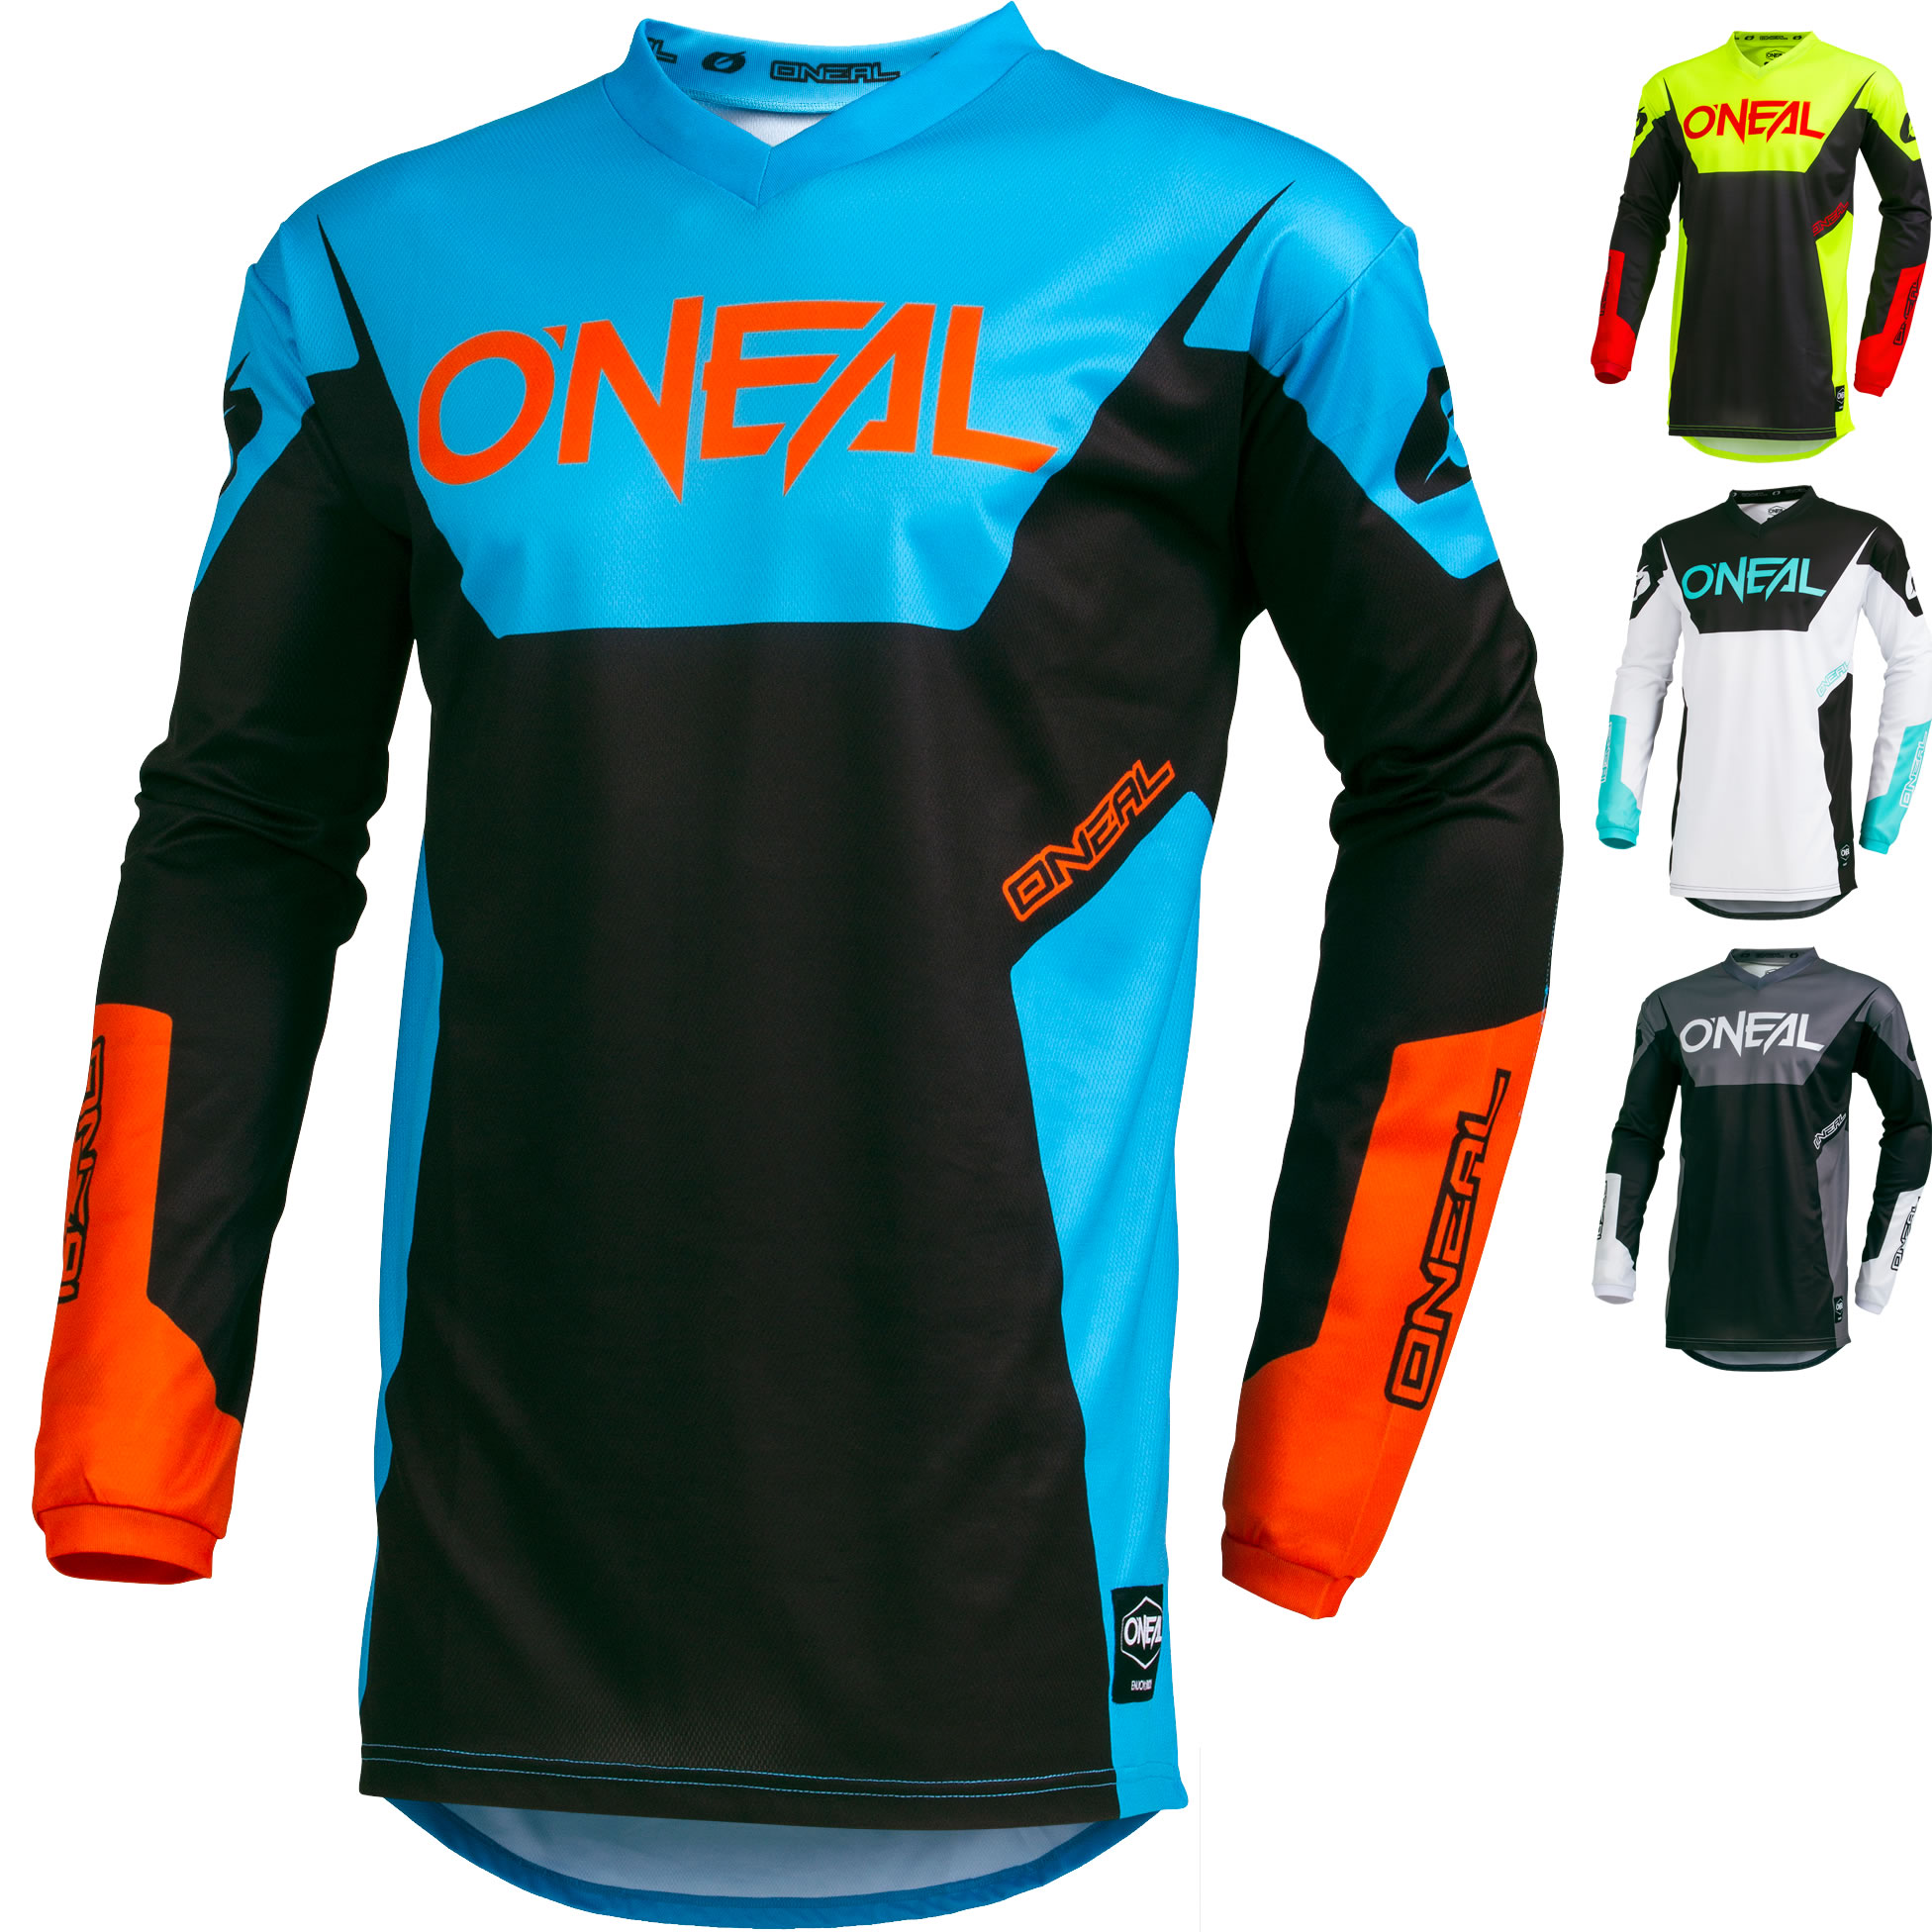 oneal jersey at ghostbikes 0d0cdc272